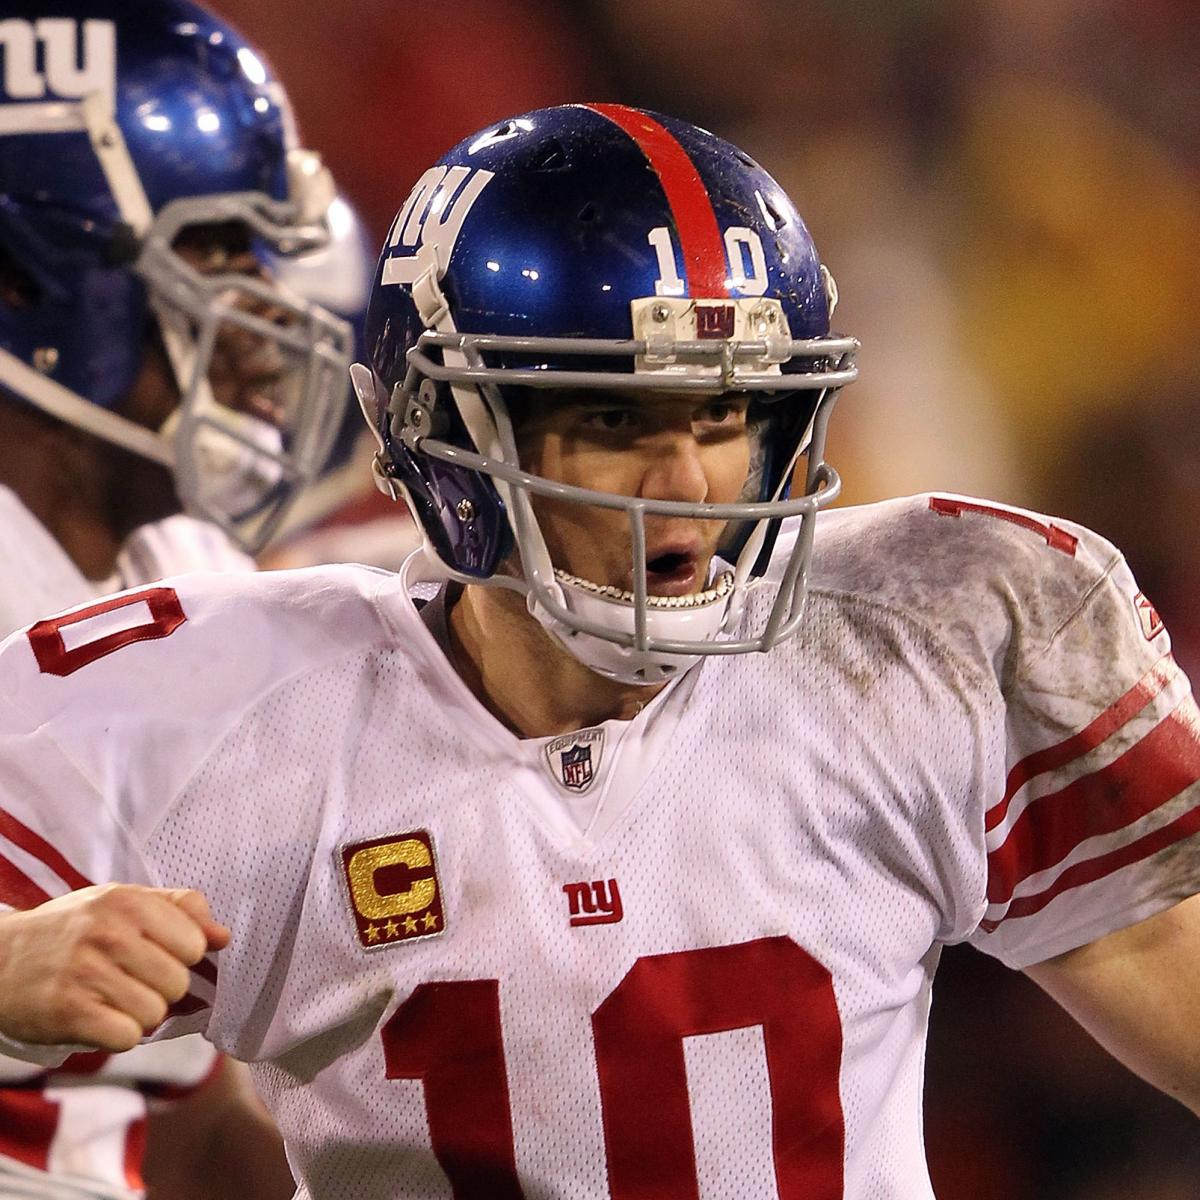 peyton vs eli The game between peyton and eli was the final professional meeting of the two brothers in week 15.